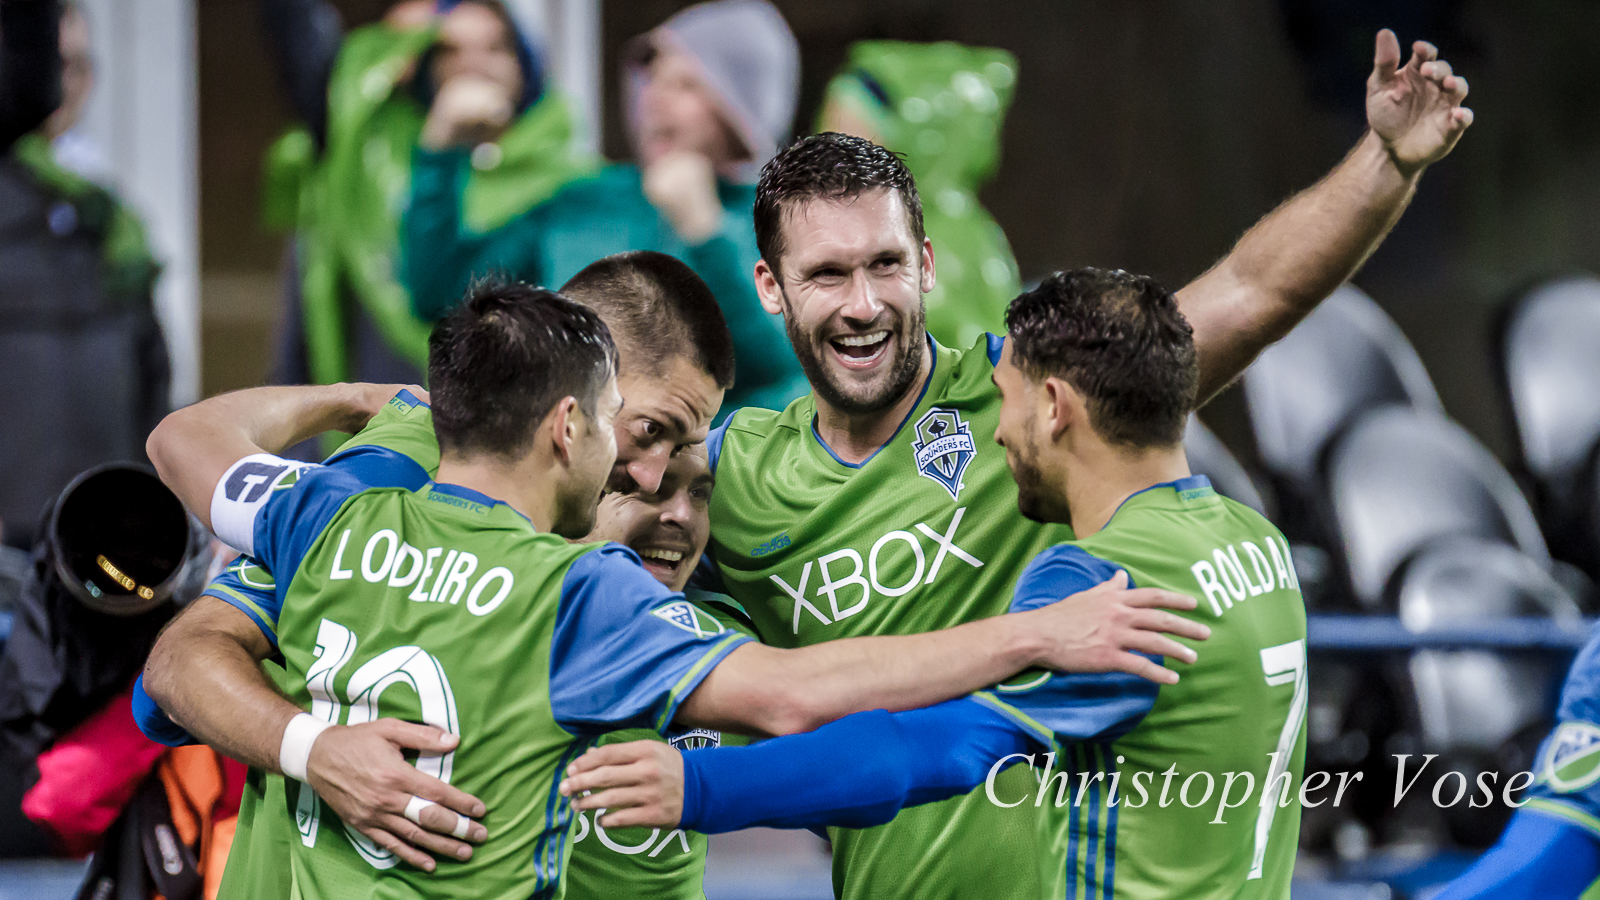 2017-11-02 Clint Dempsey's Second Goal Celebration 2.jpg